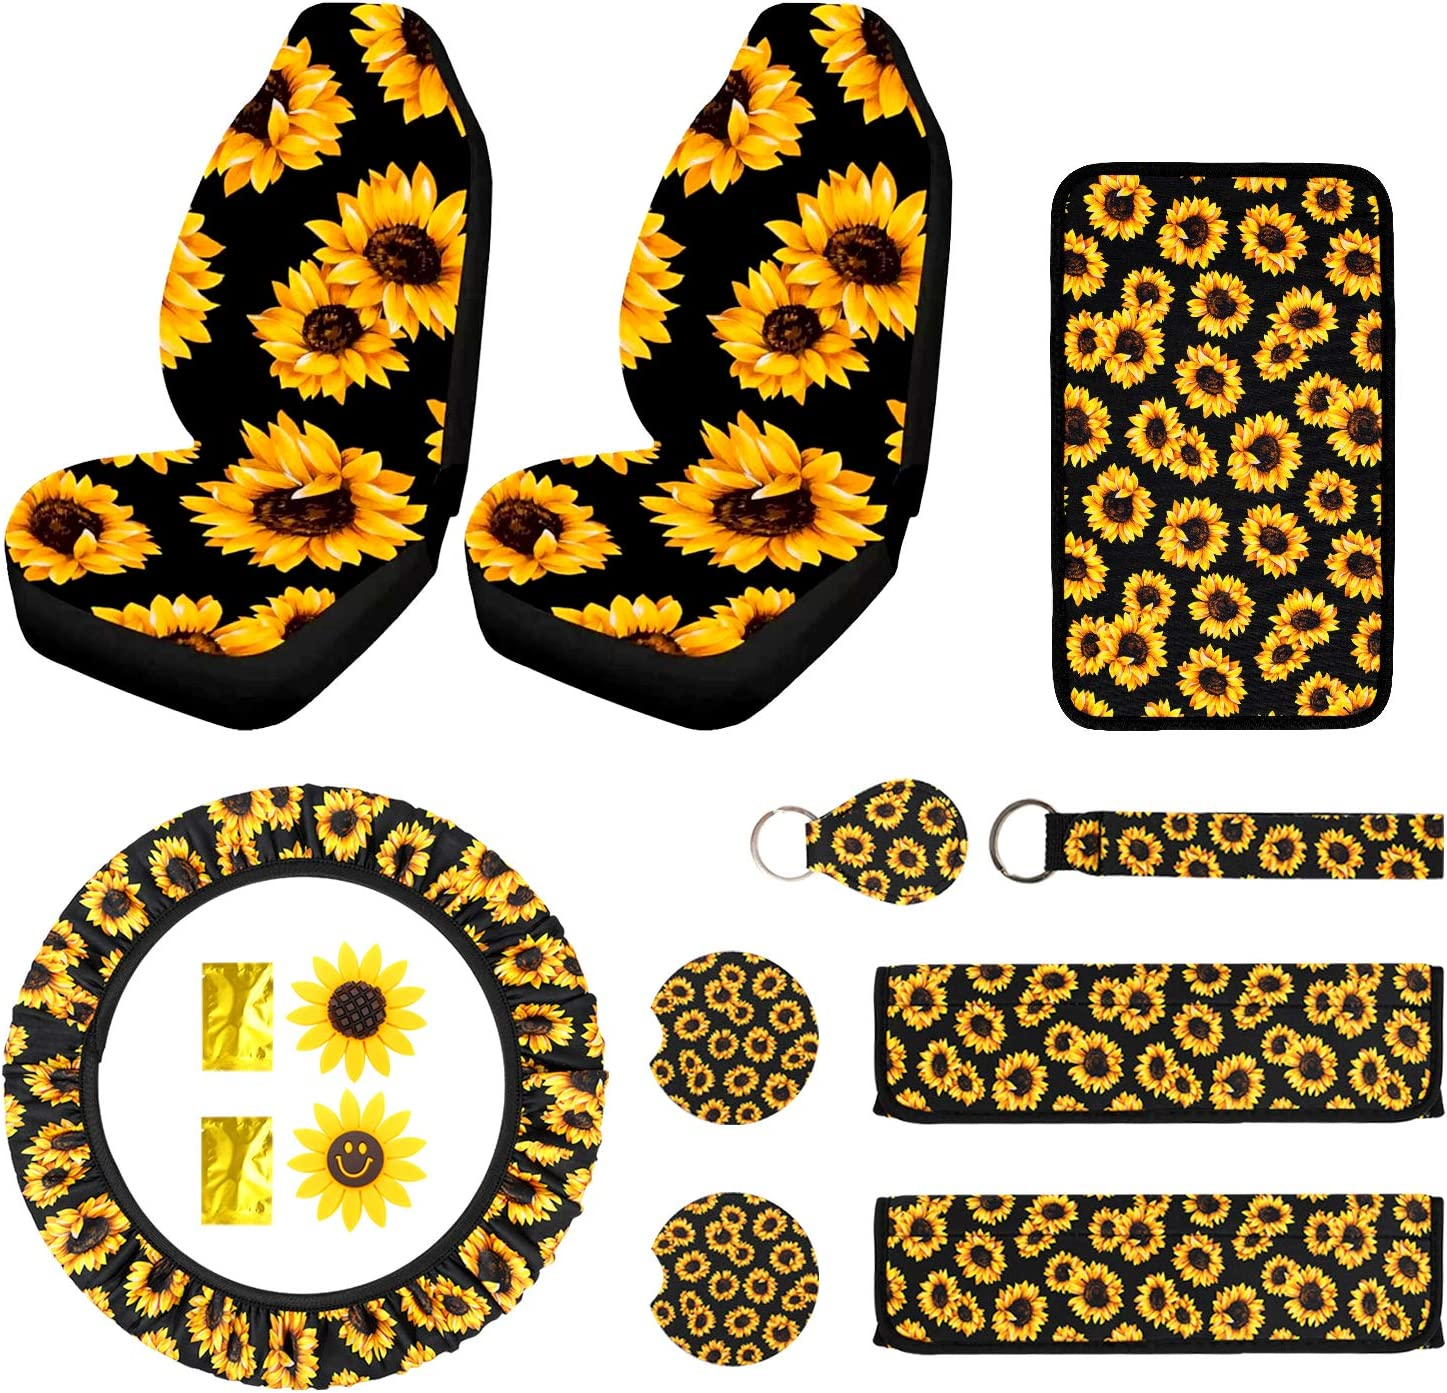 12PCS Sunflower Car Accessories Set Surprise price Front Seat Cover Ranking TOP7 Include